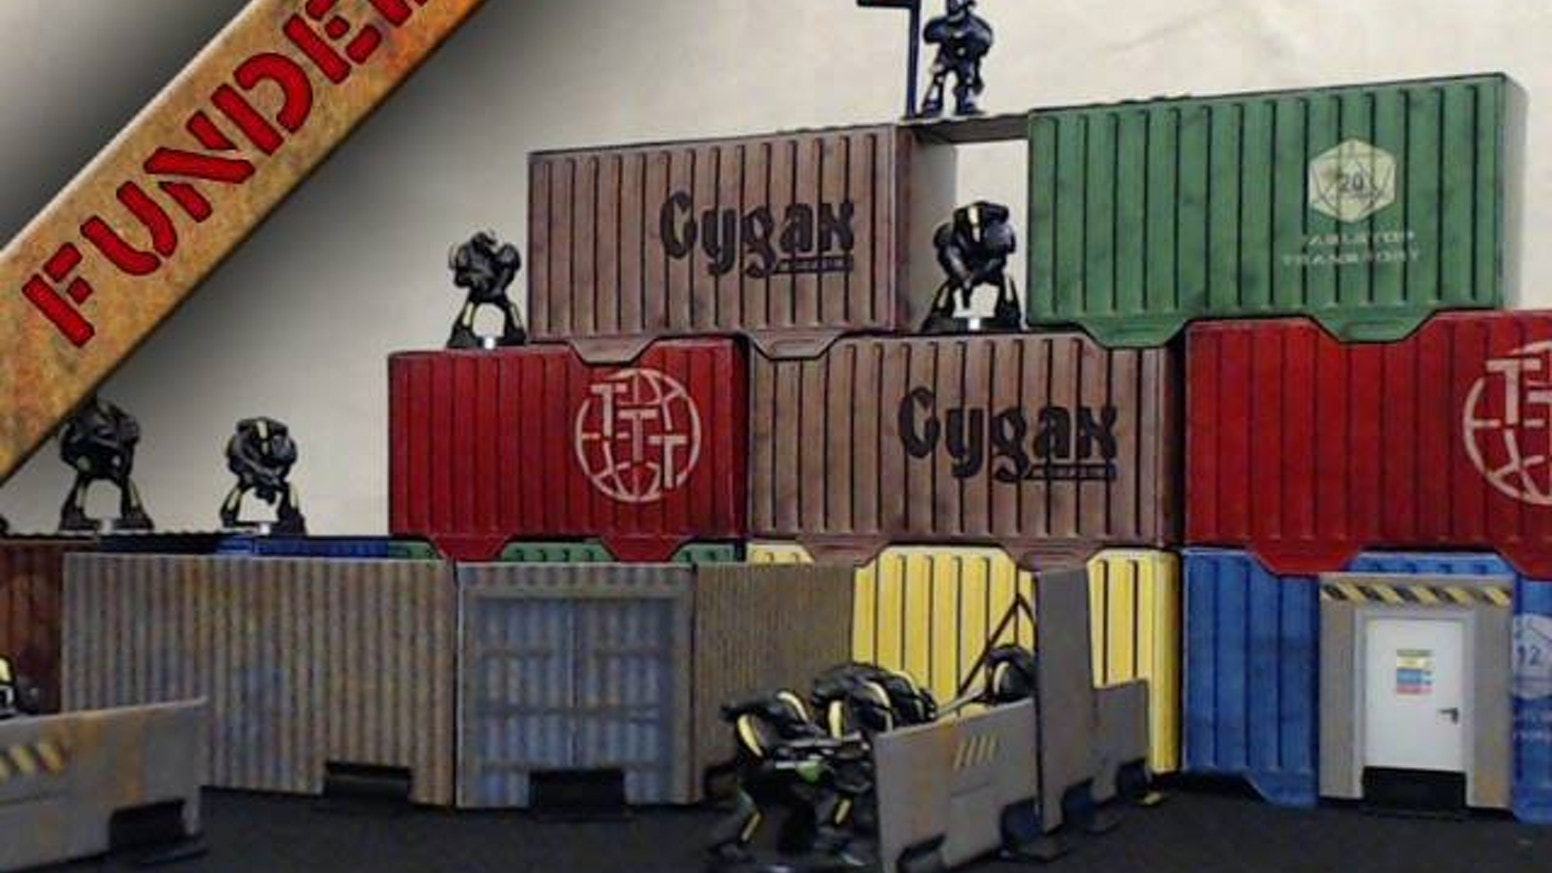 High Quality, fold flat, easy store shipping containers for modern, post apocalyptic and Science Fiction tabletop gaming.